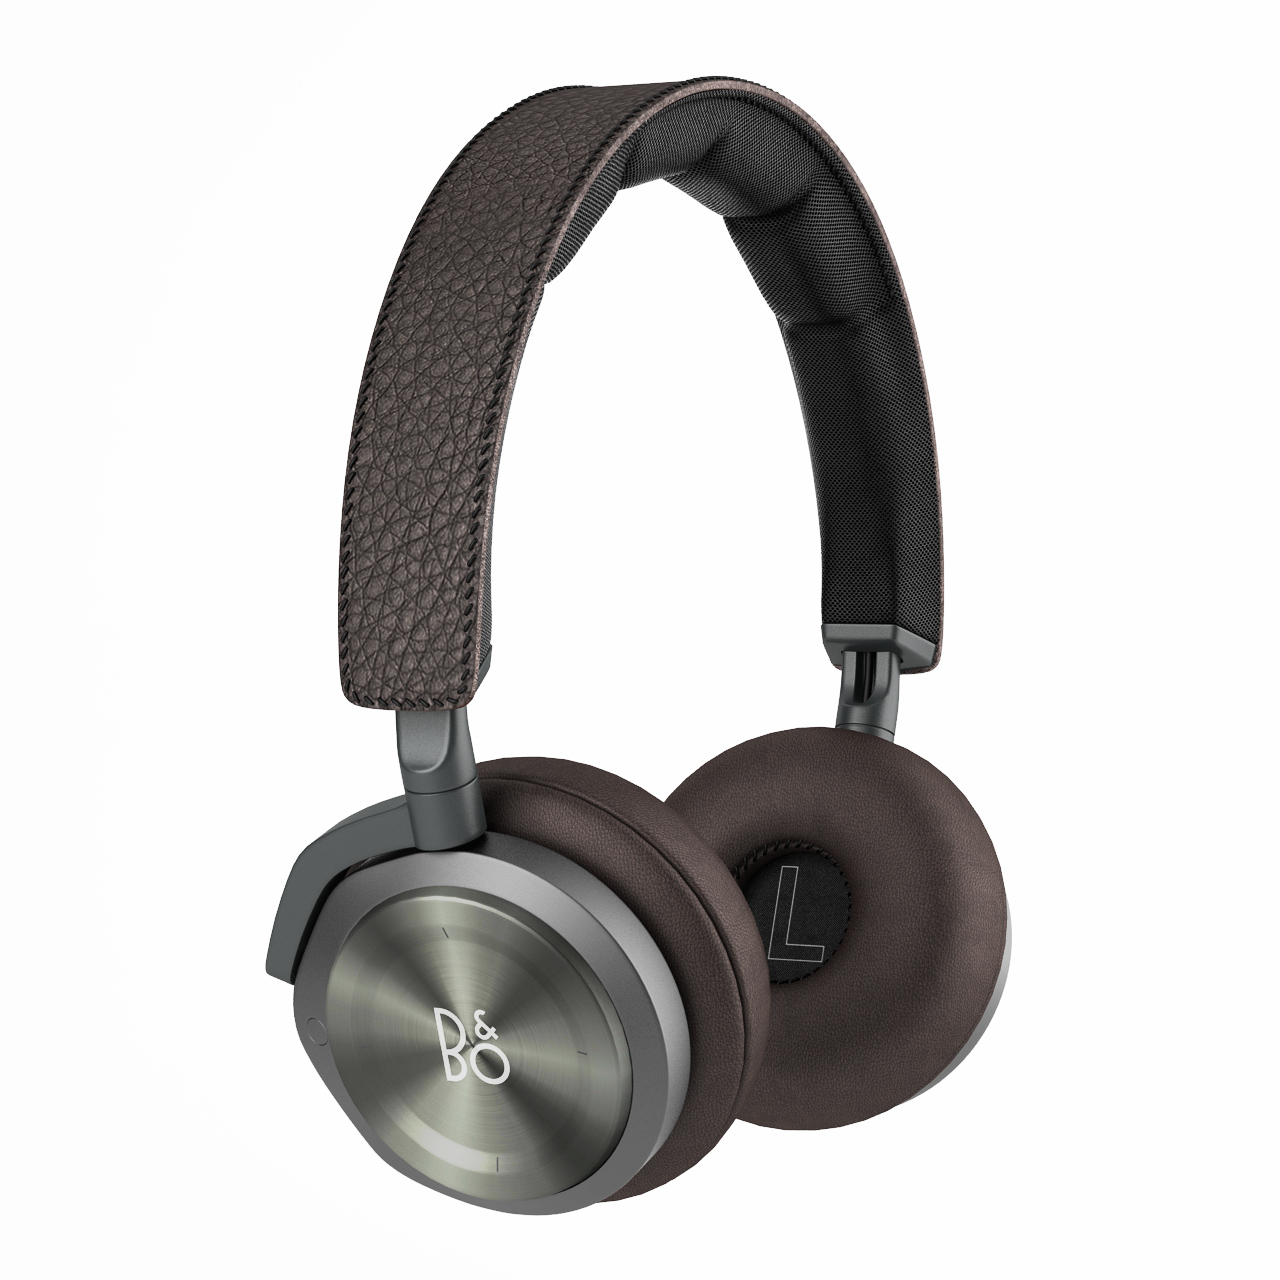 BeoPlay H8 Headphones by Bang & Olufsen